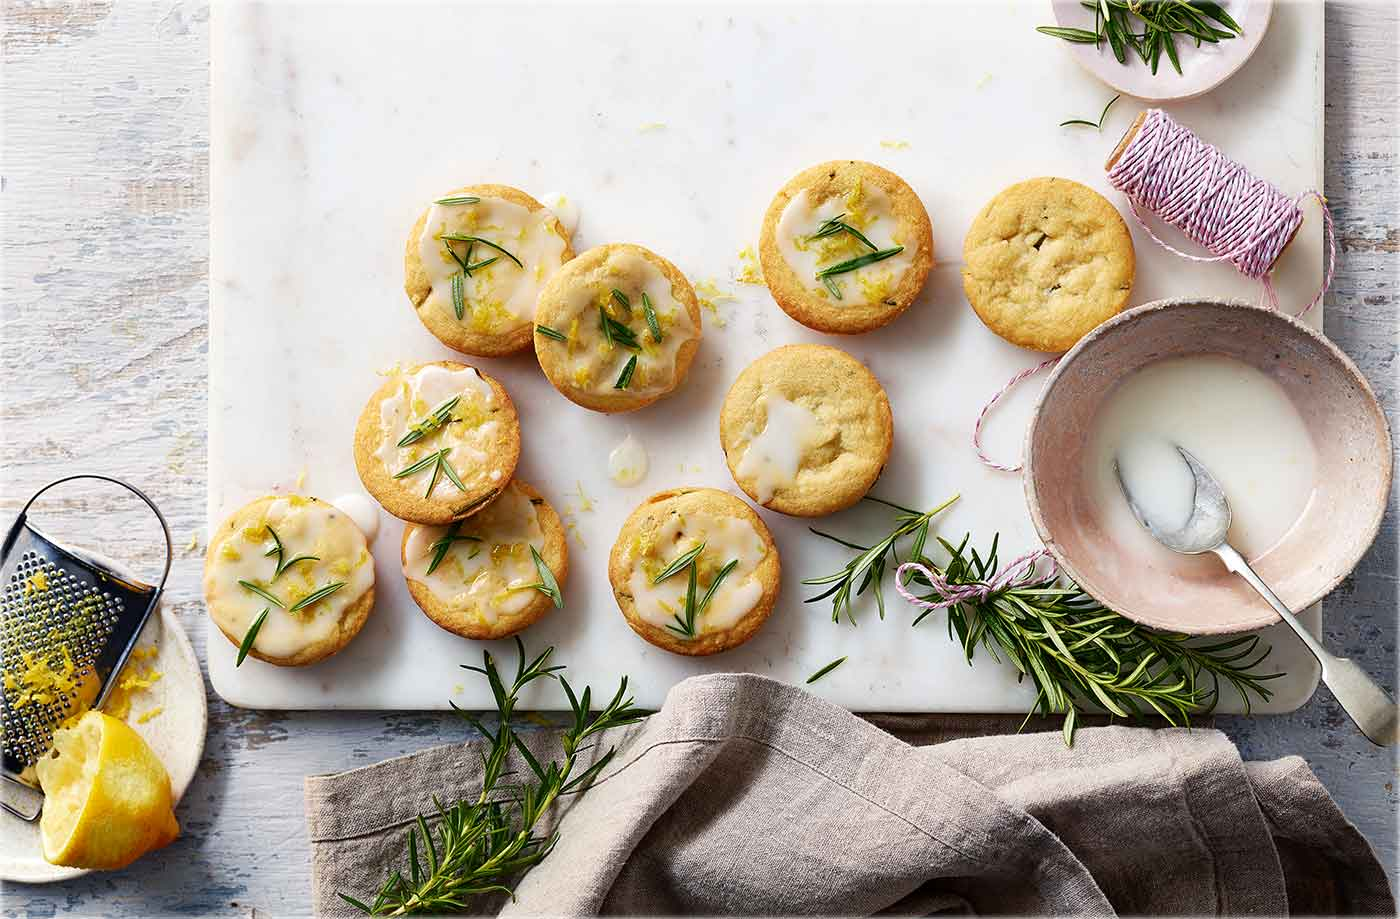 Rosemary shortbreads with lemon icing recipe